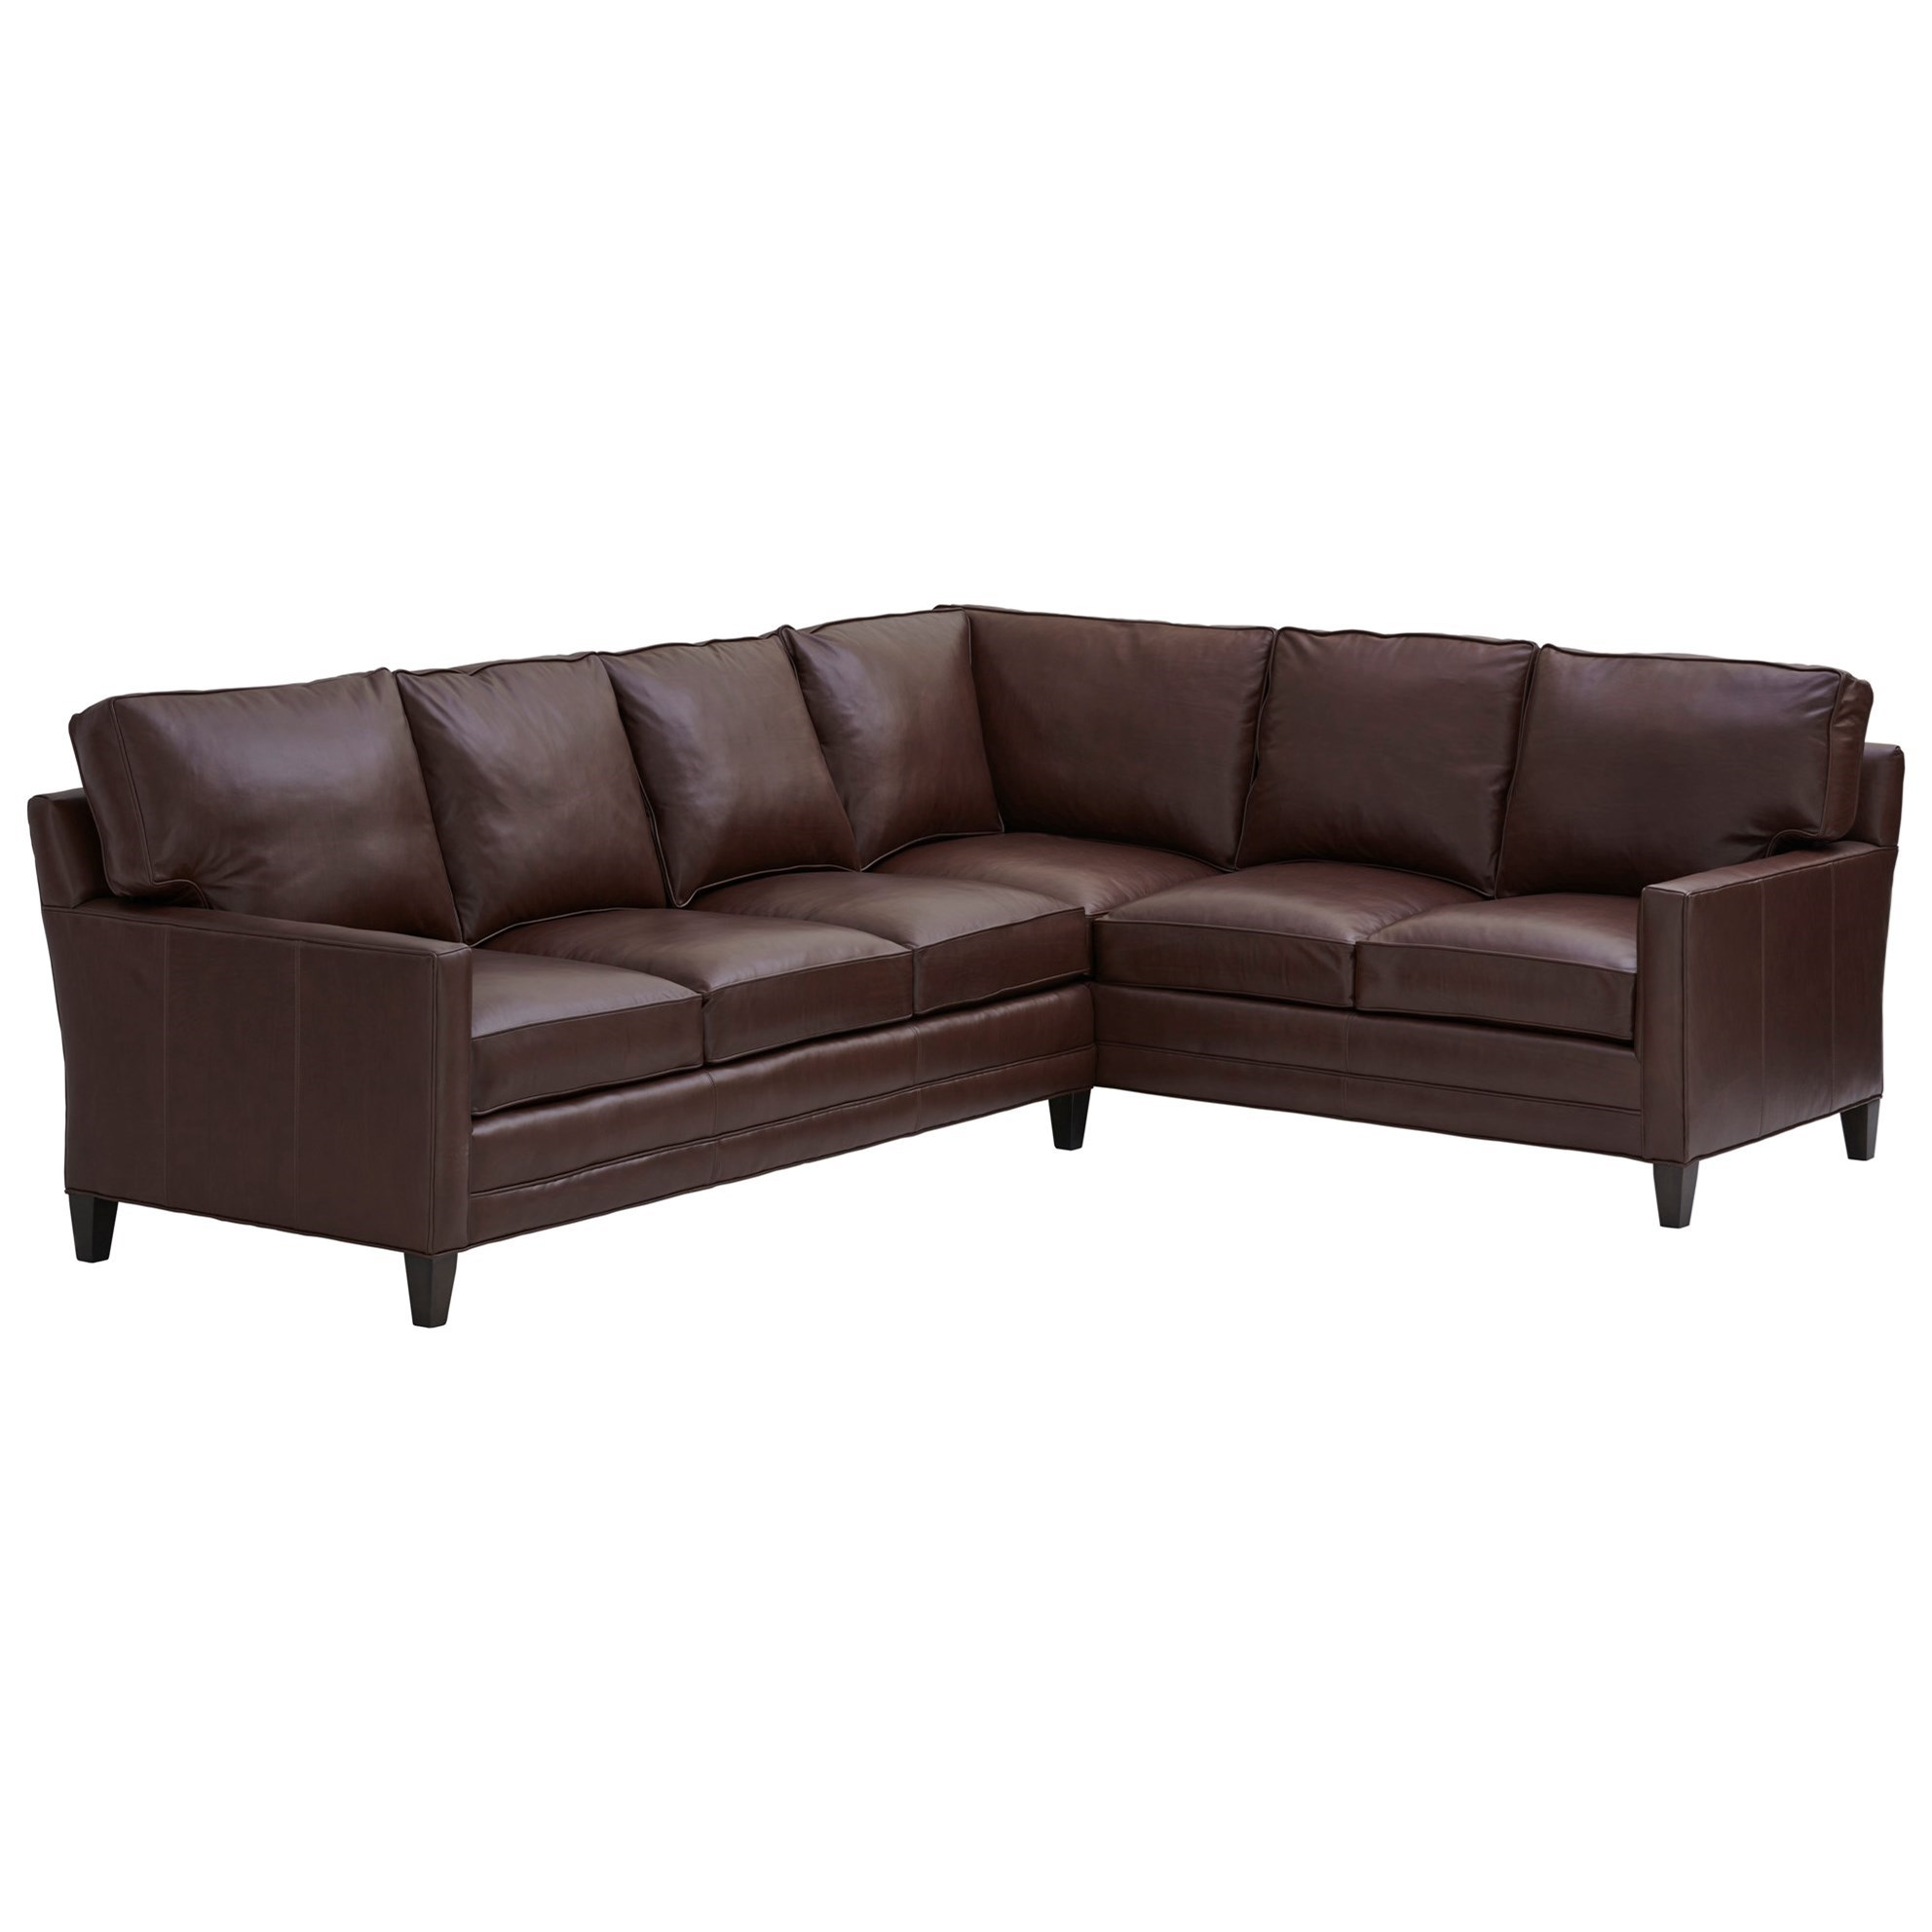 Couture Leather Brayden Customizable 5-Seat Sectional Sofa by Lexington at Johnny Janosik